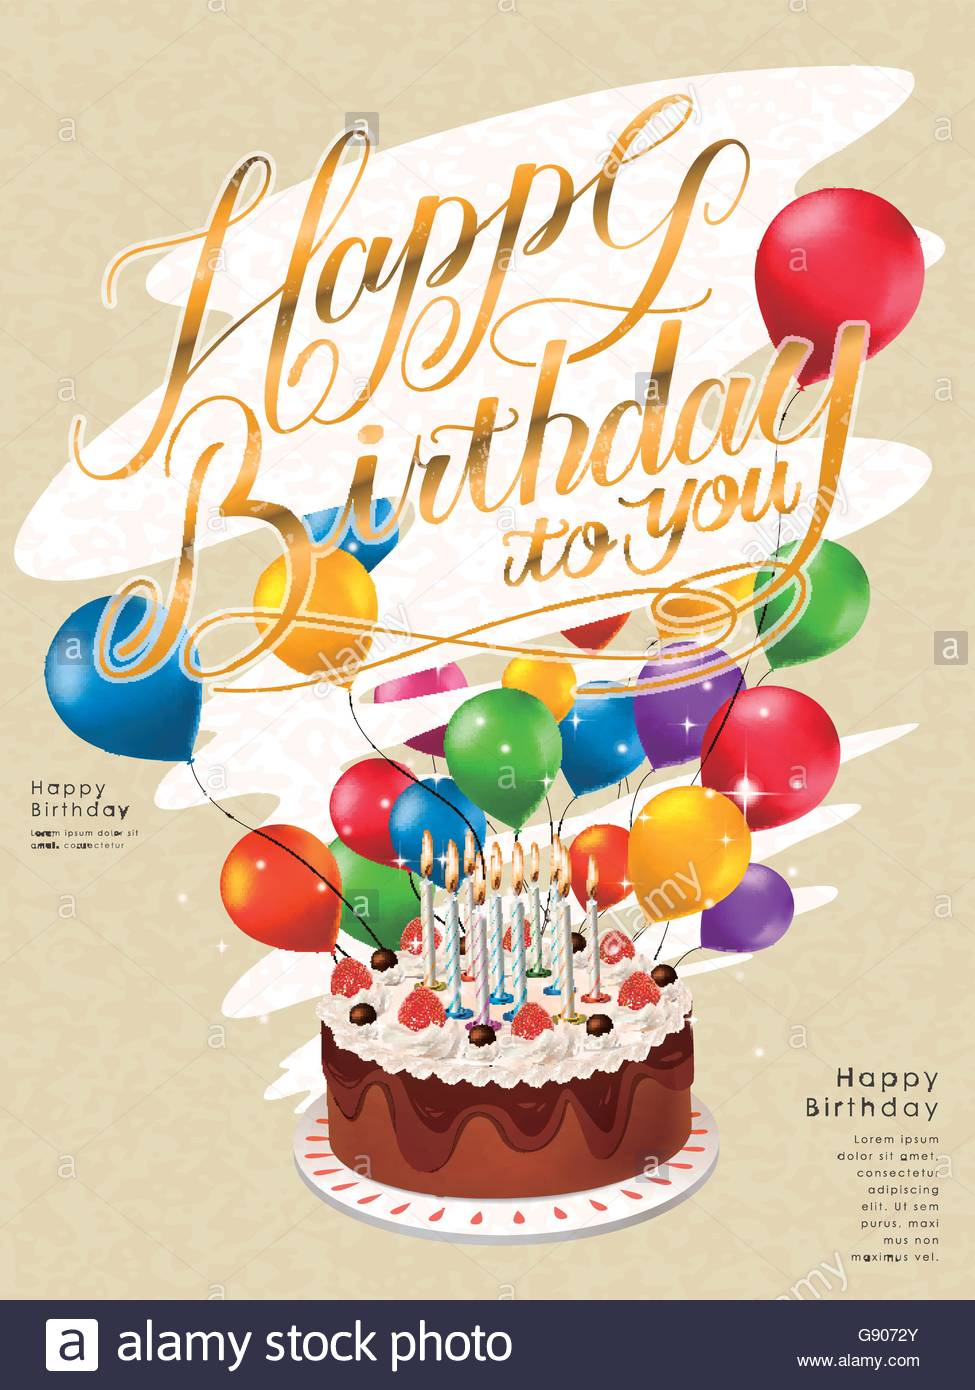 birthday poster making ; birthday%2520party%2520poster%2520design%2520;%2520happy-birthday-poster-template-design-with-lovely-cake-and-balloons-G9072Y